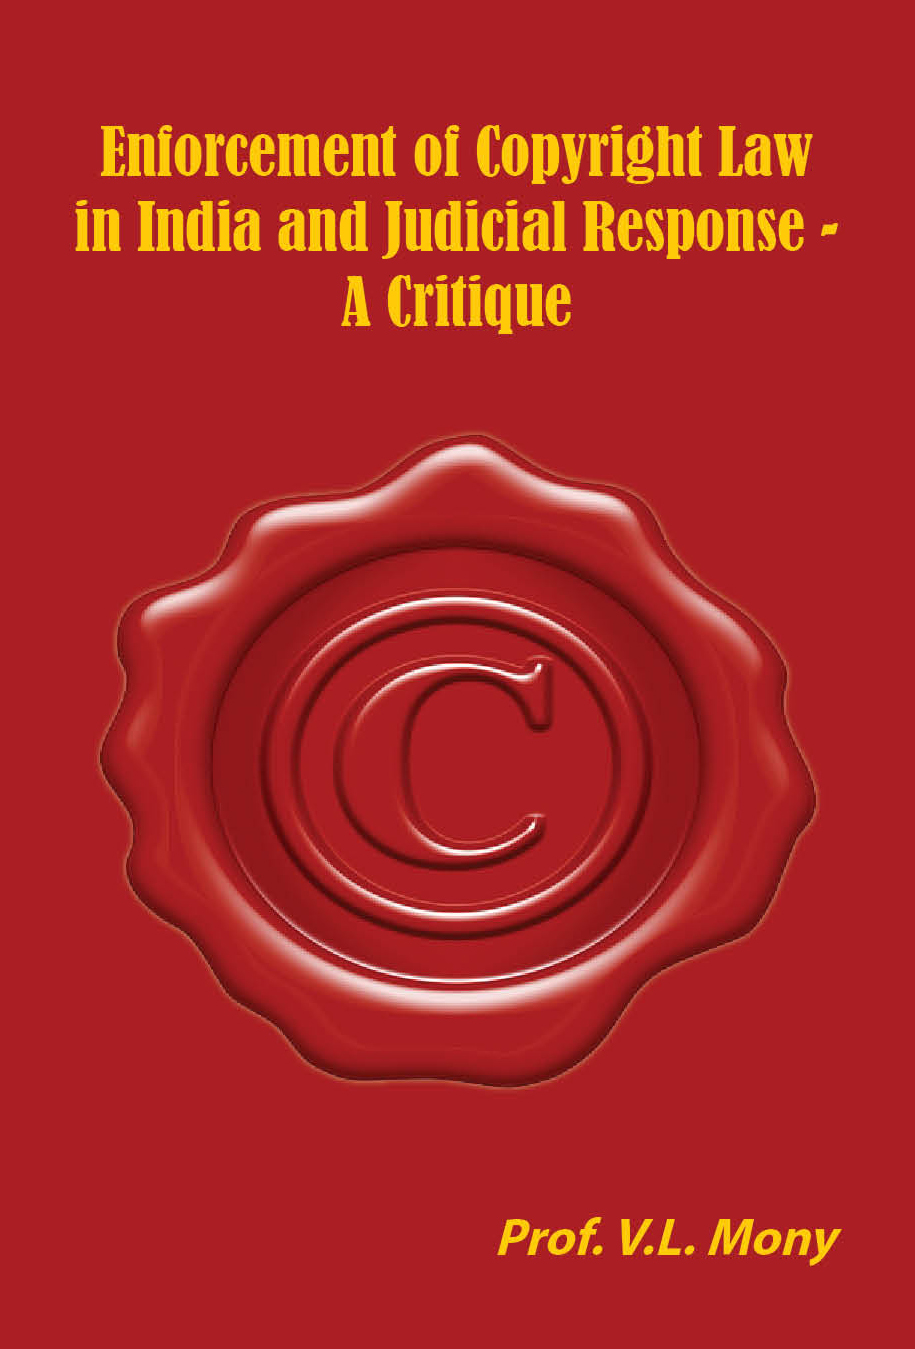 Enforcement of Copyright Law in India and Judicial Respose : A Critique